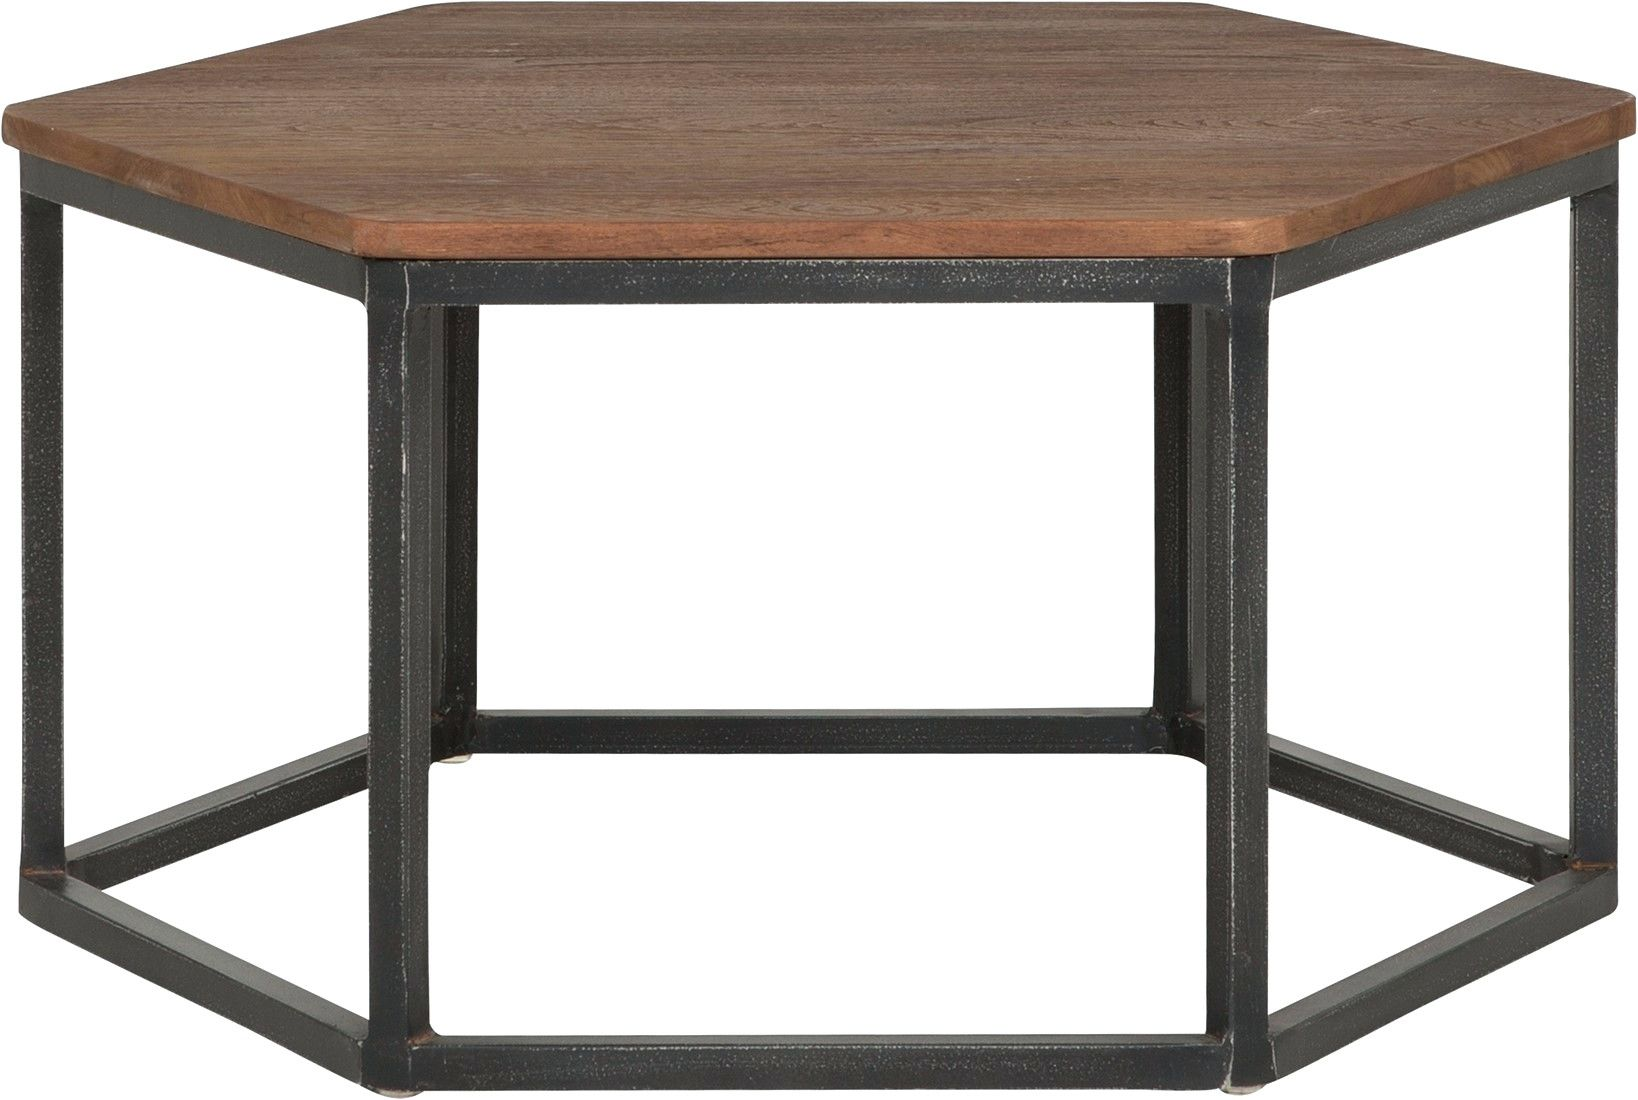 Hexagon Coffee Table Plans Coffee Table Hexagon 35x70x61 Cm 3